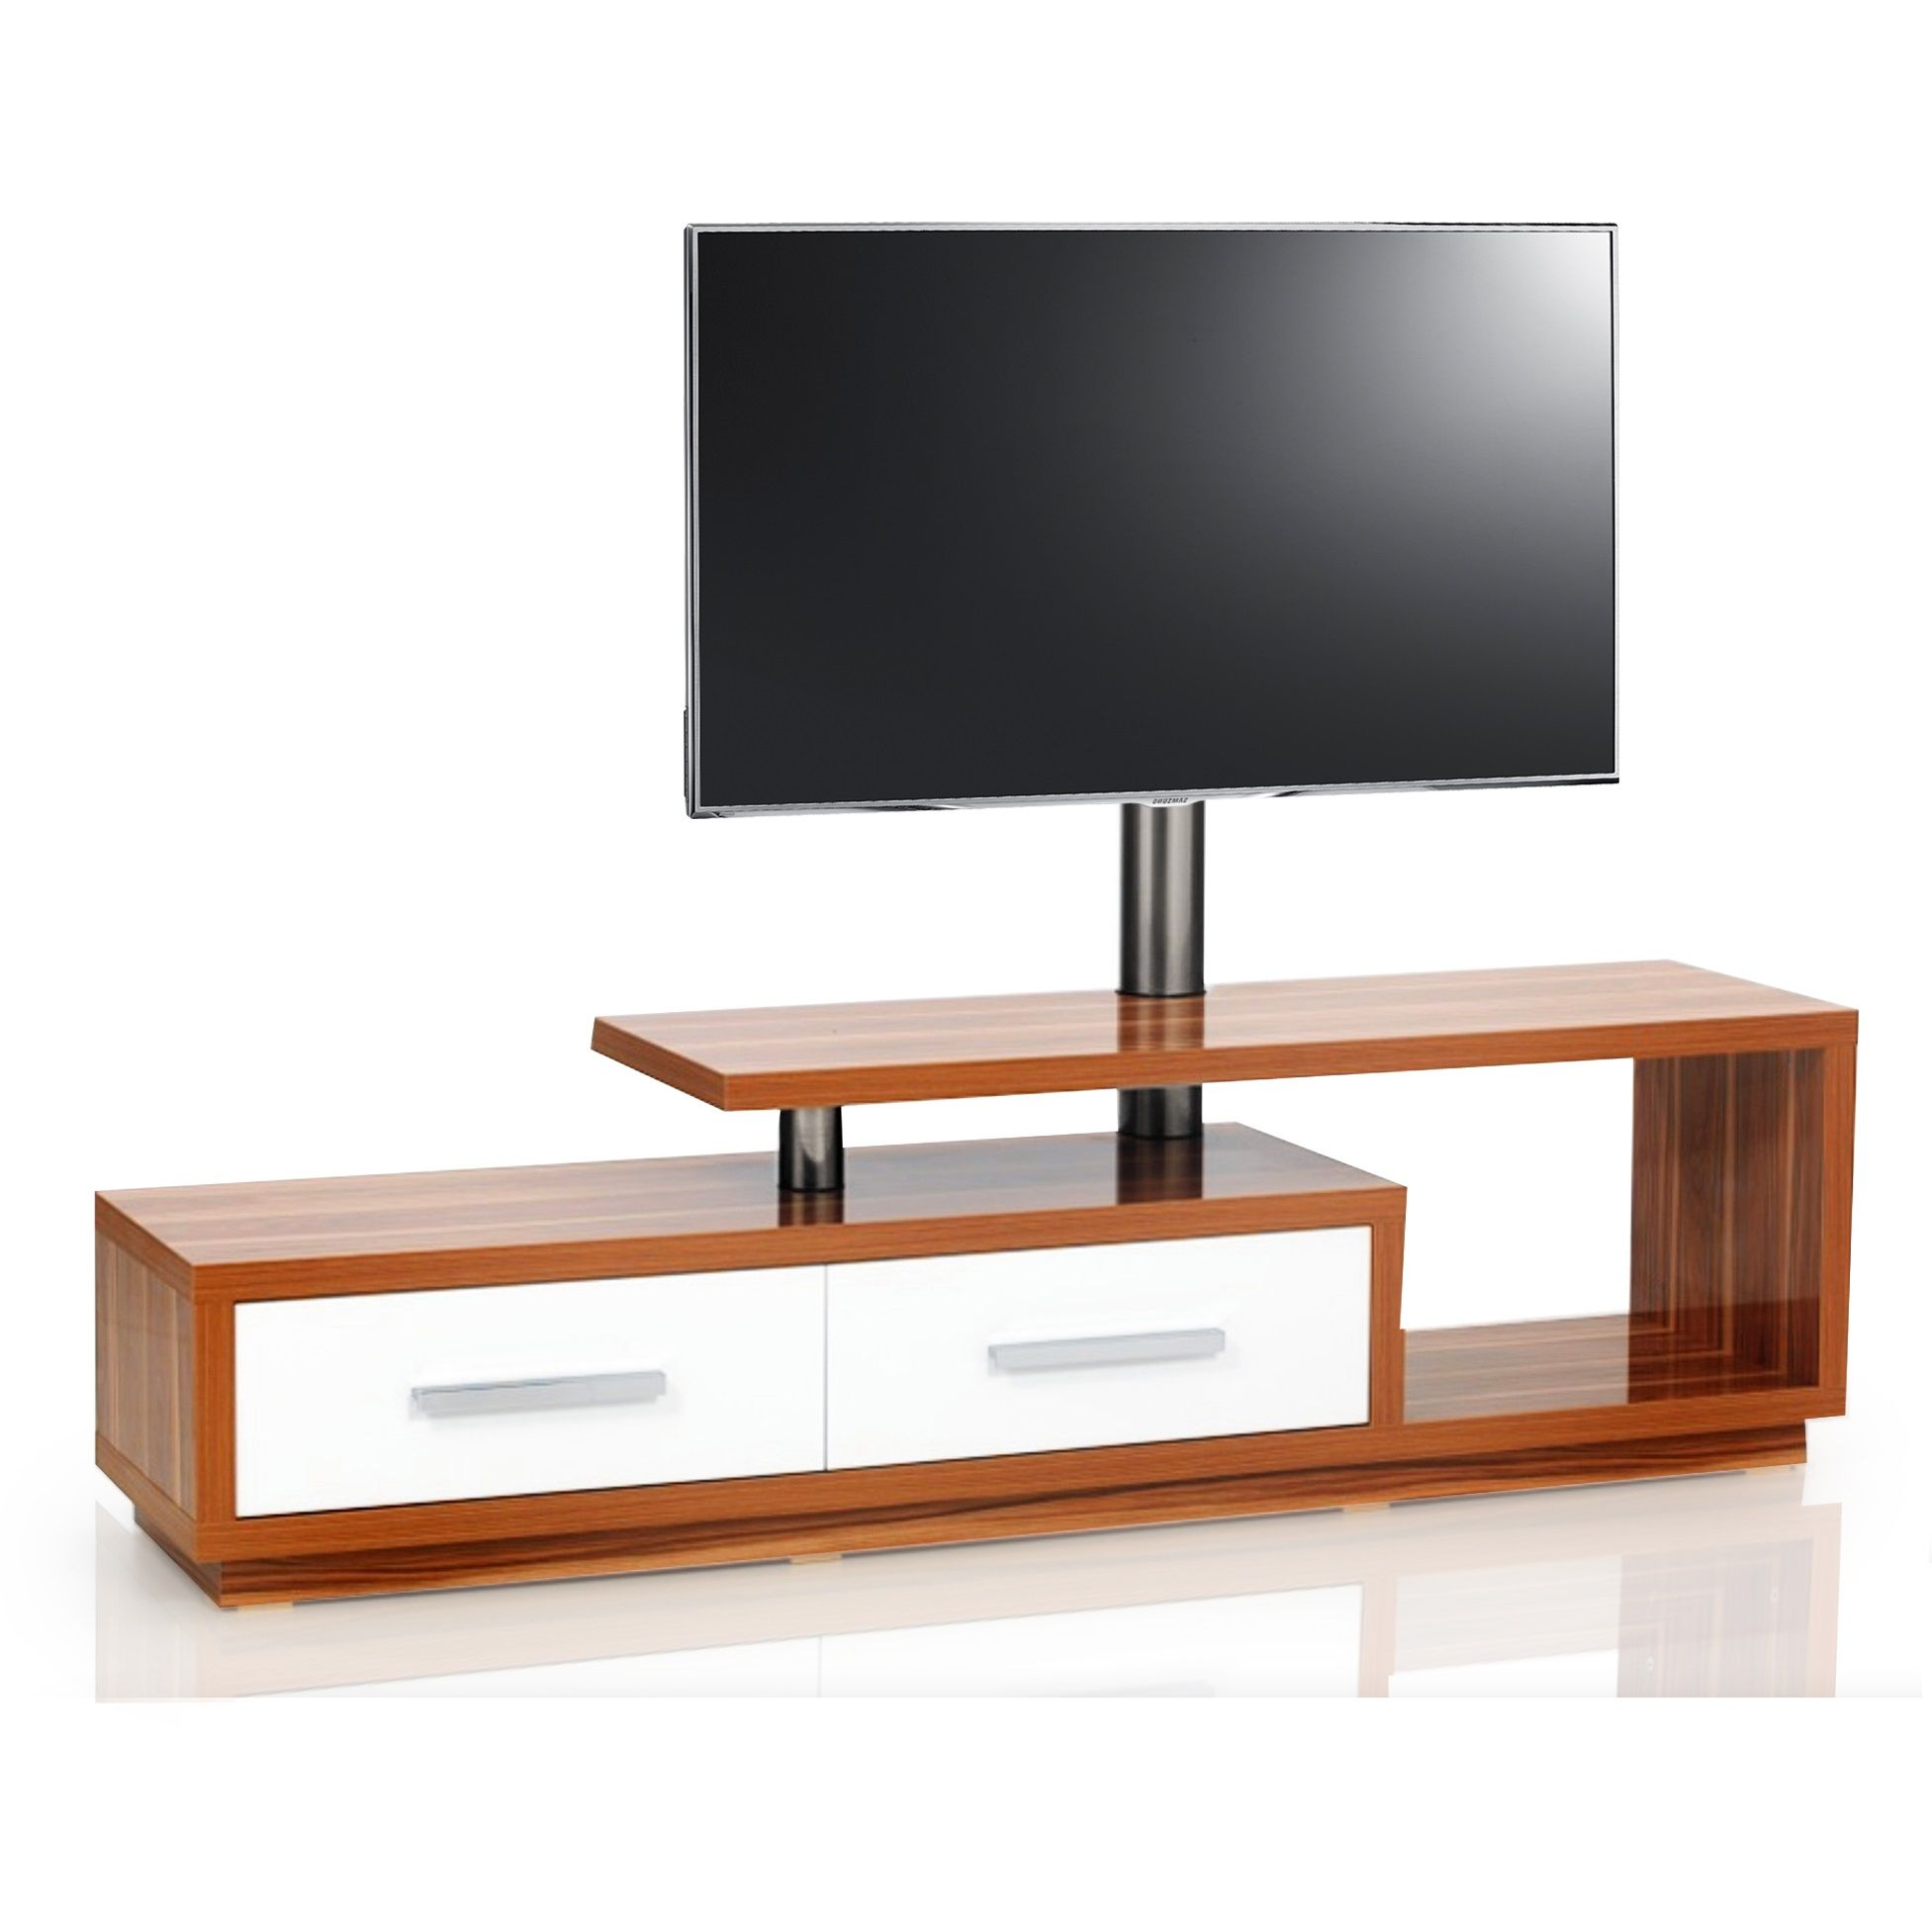 Stunning Tables De Television Contemporary Joshkrajcik Us  # Table Tv En Rouge Et Blanc